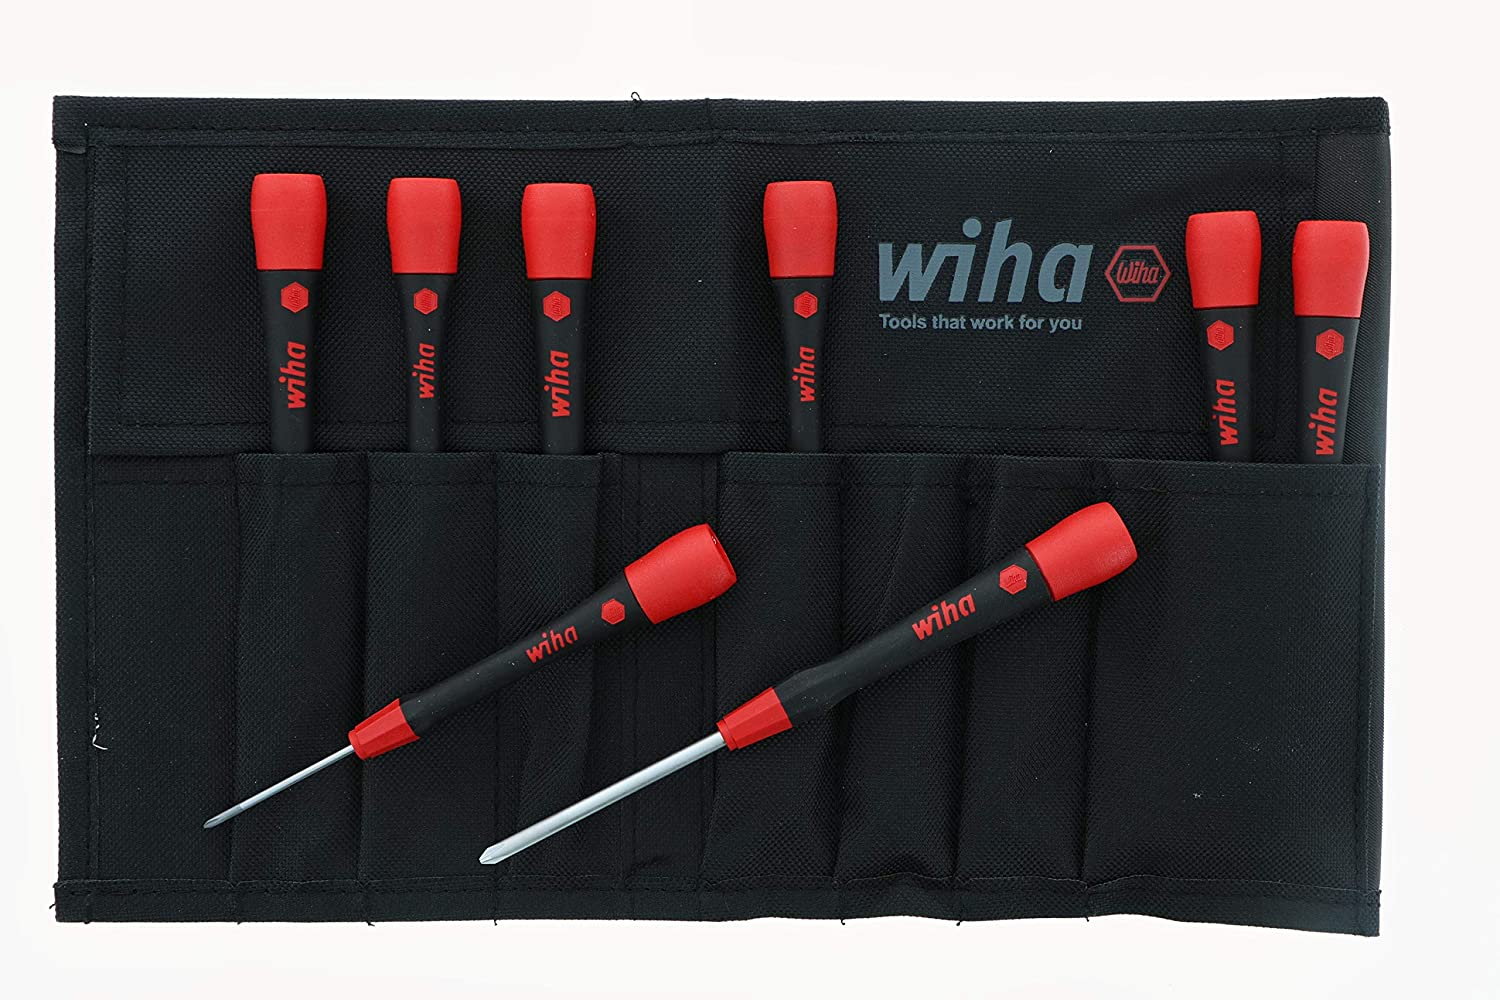 Wiha 26193 Slotted and Phillips Screwdriver Set with Soft PicoFinish Handle 8-Piece